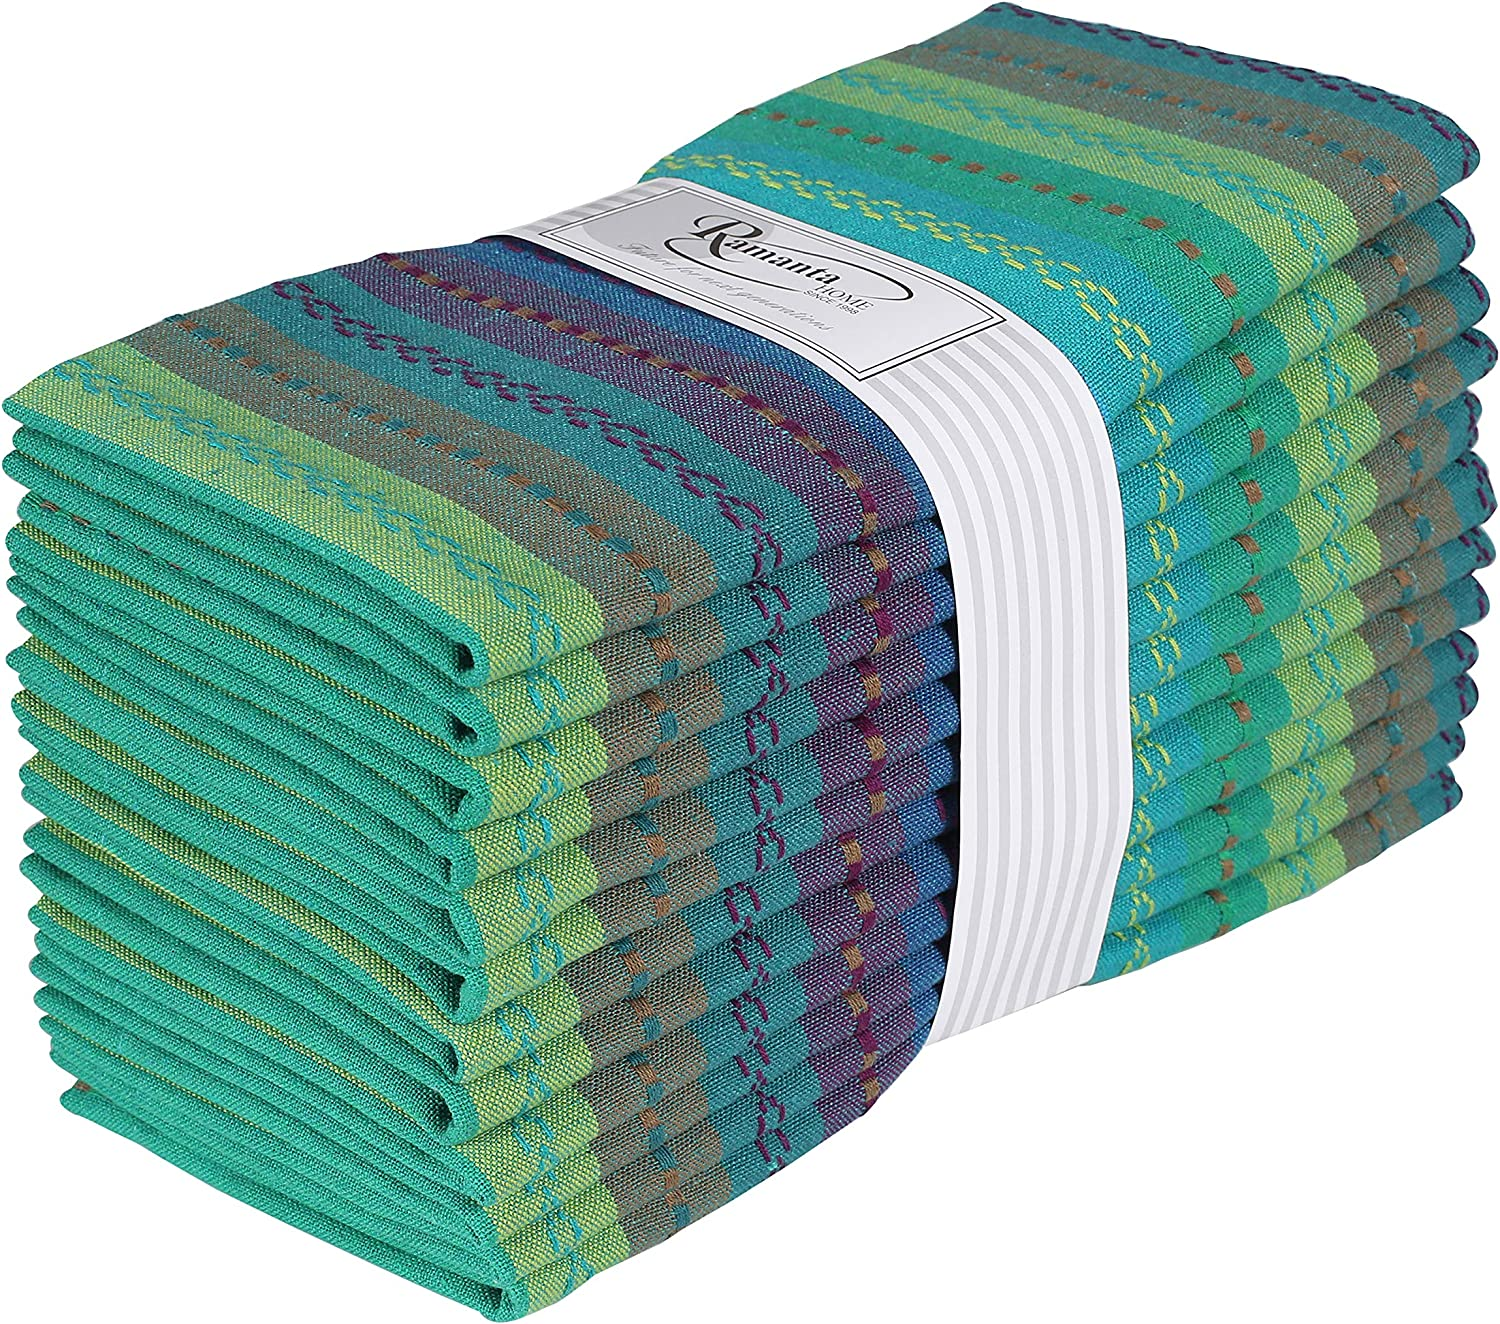 Ramanta Home 12-Pack Salsa Stripe 100% Cotton Dinner Napkin Oversized 20x20 with Mitered Corners & Generous Hem - Teal Multi